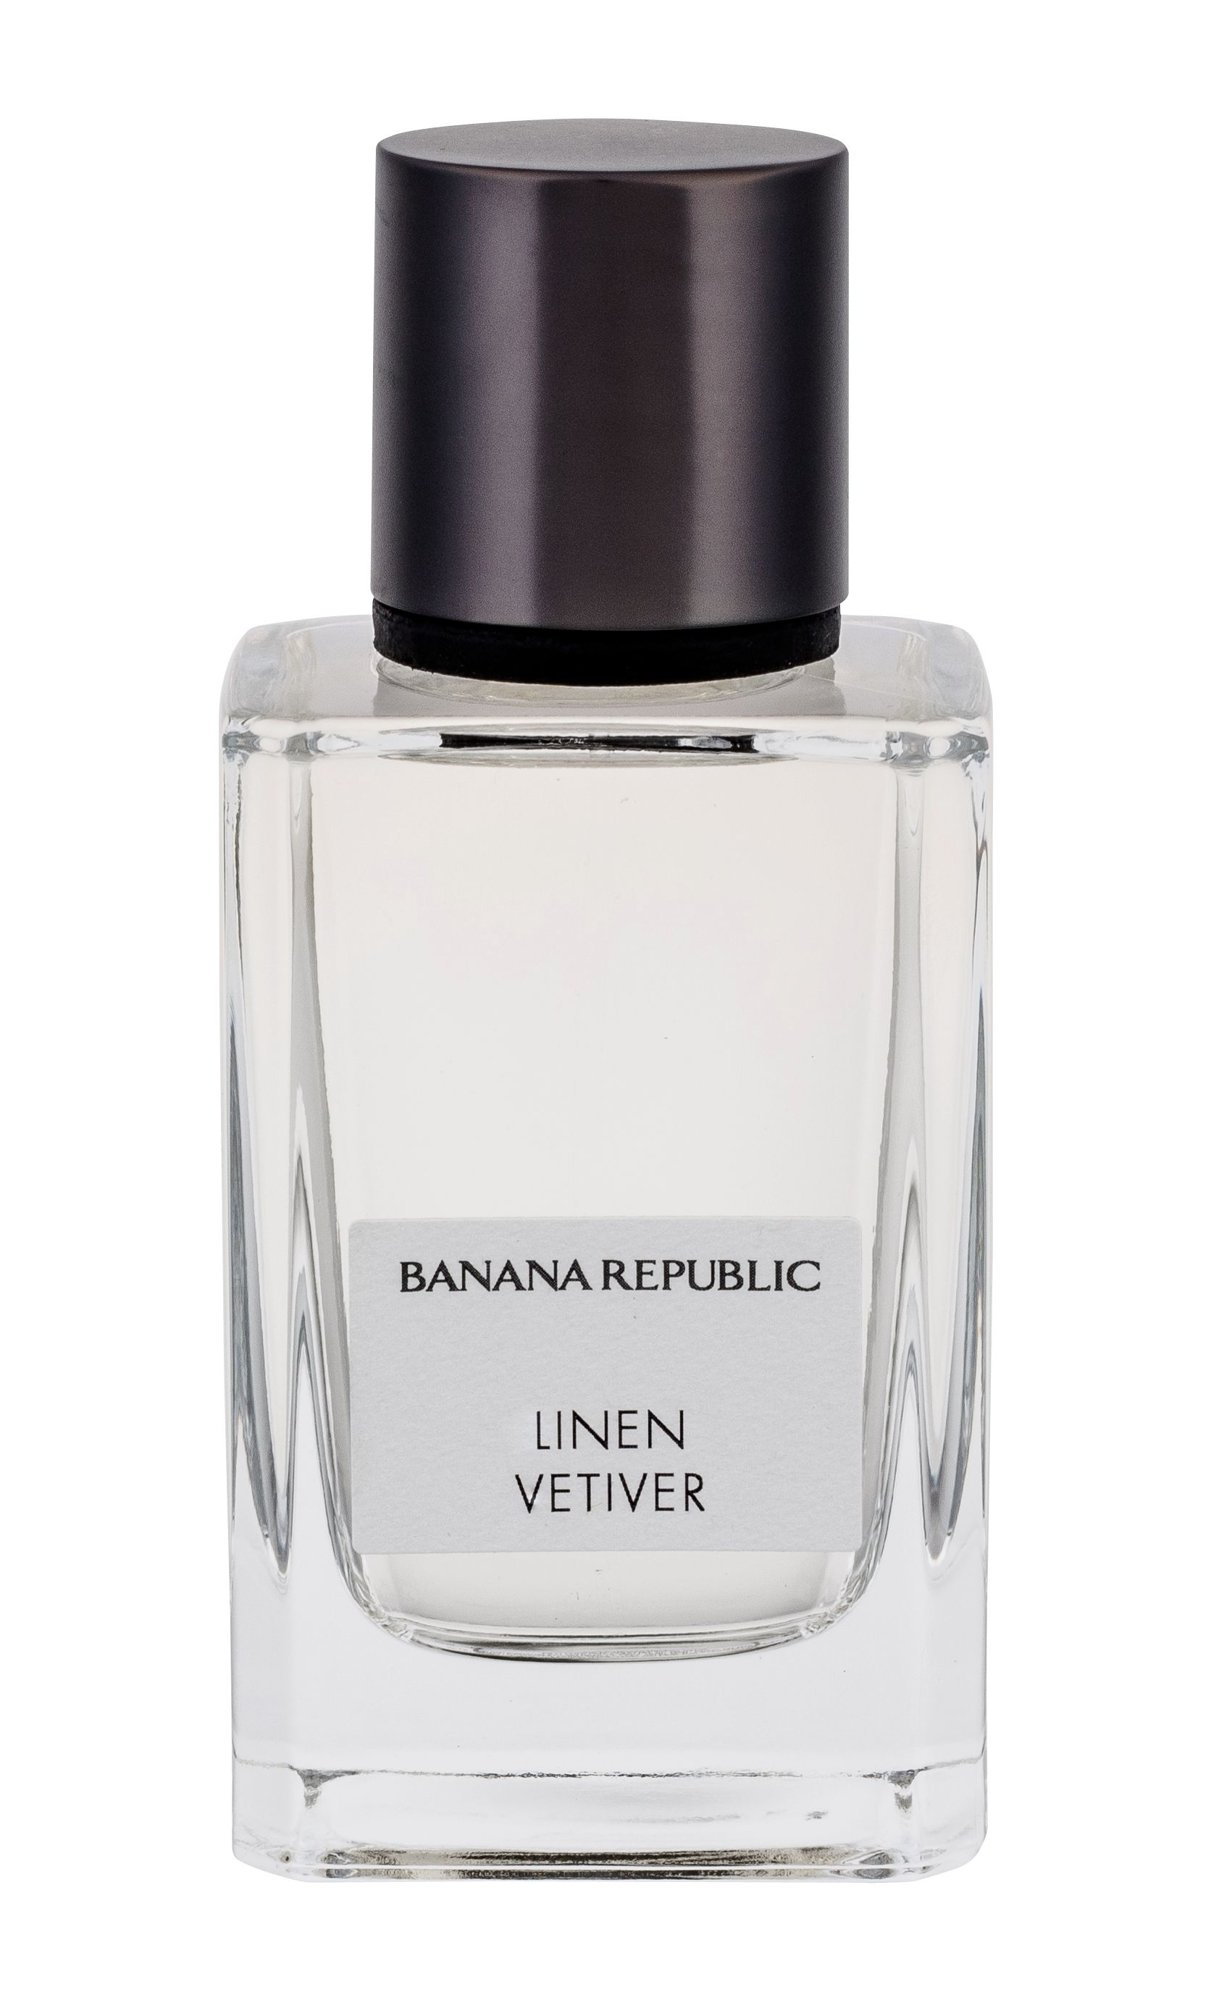 Banana Republic Linen Vetiver Eau de Parfum 75ml